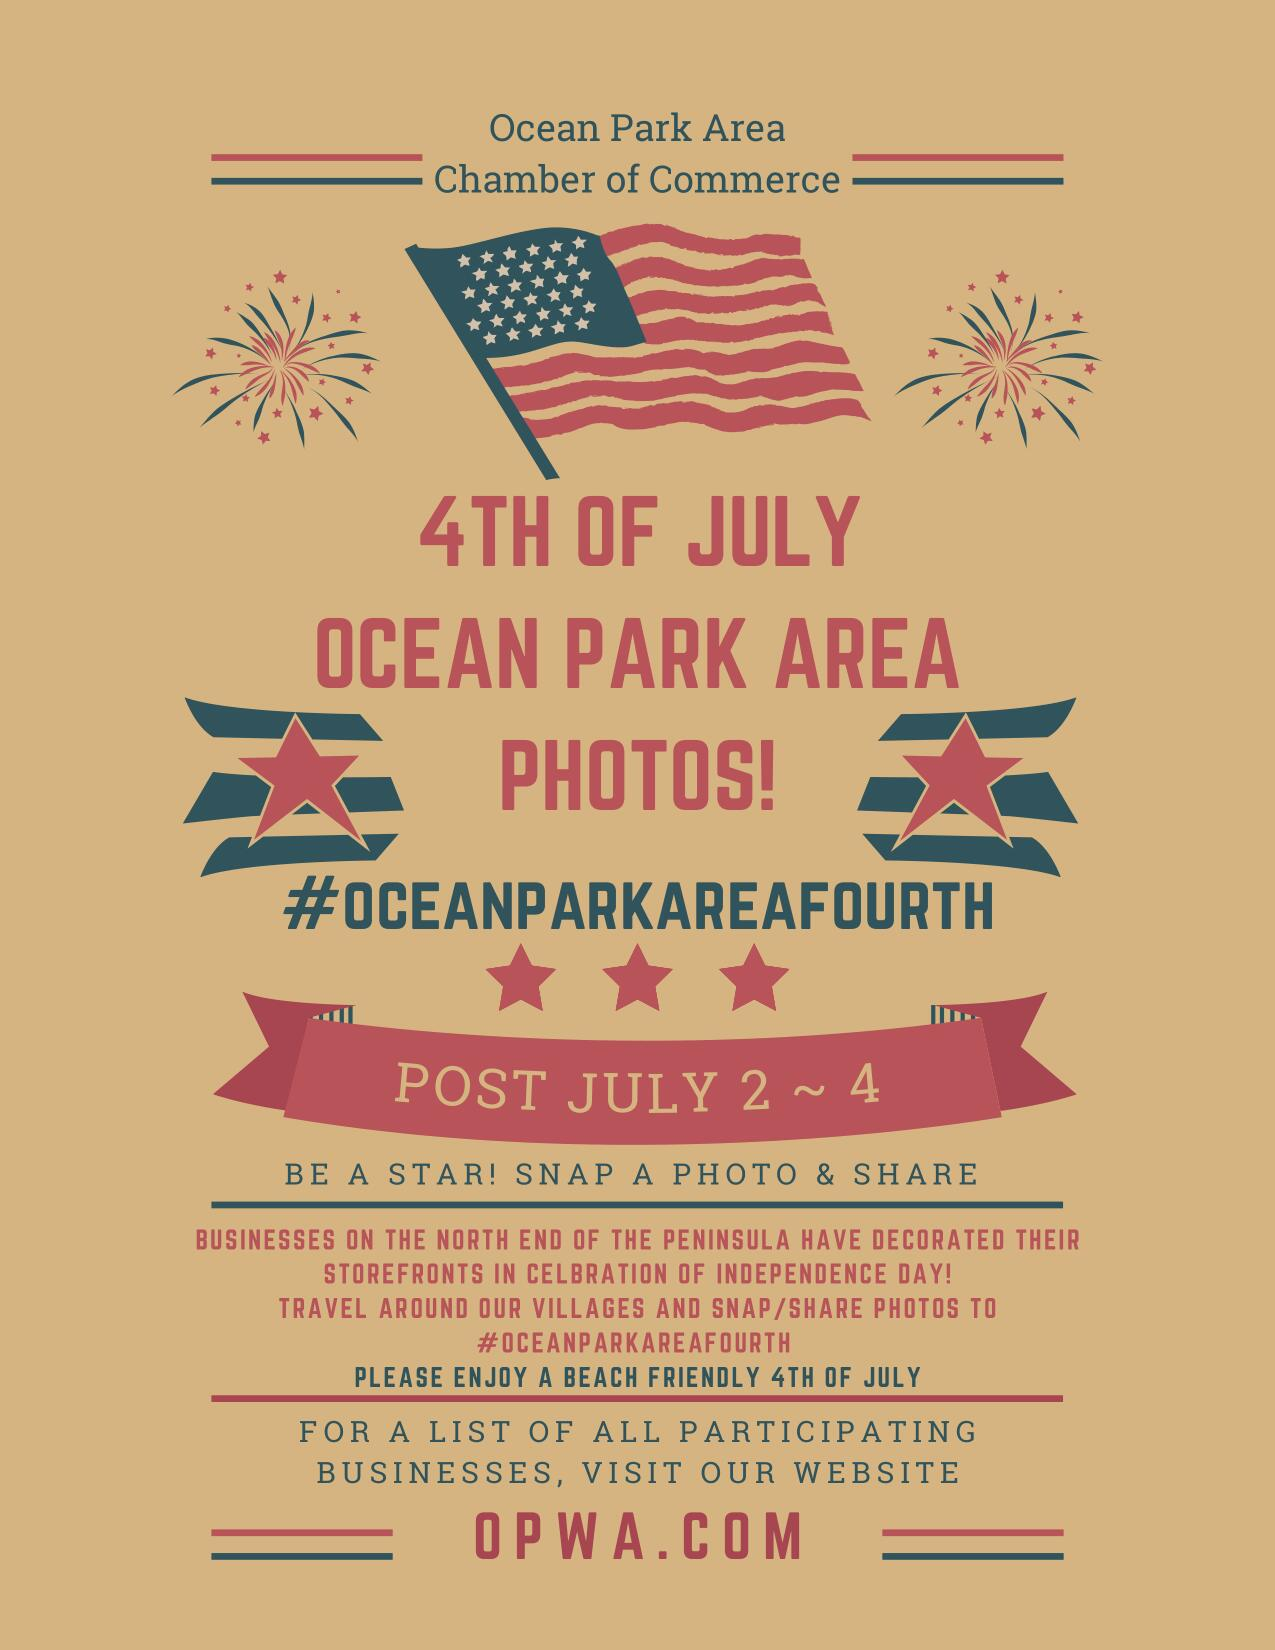 4th of July Photos flyer